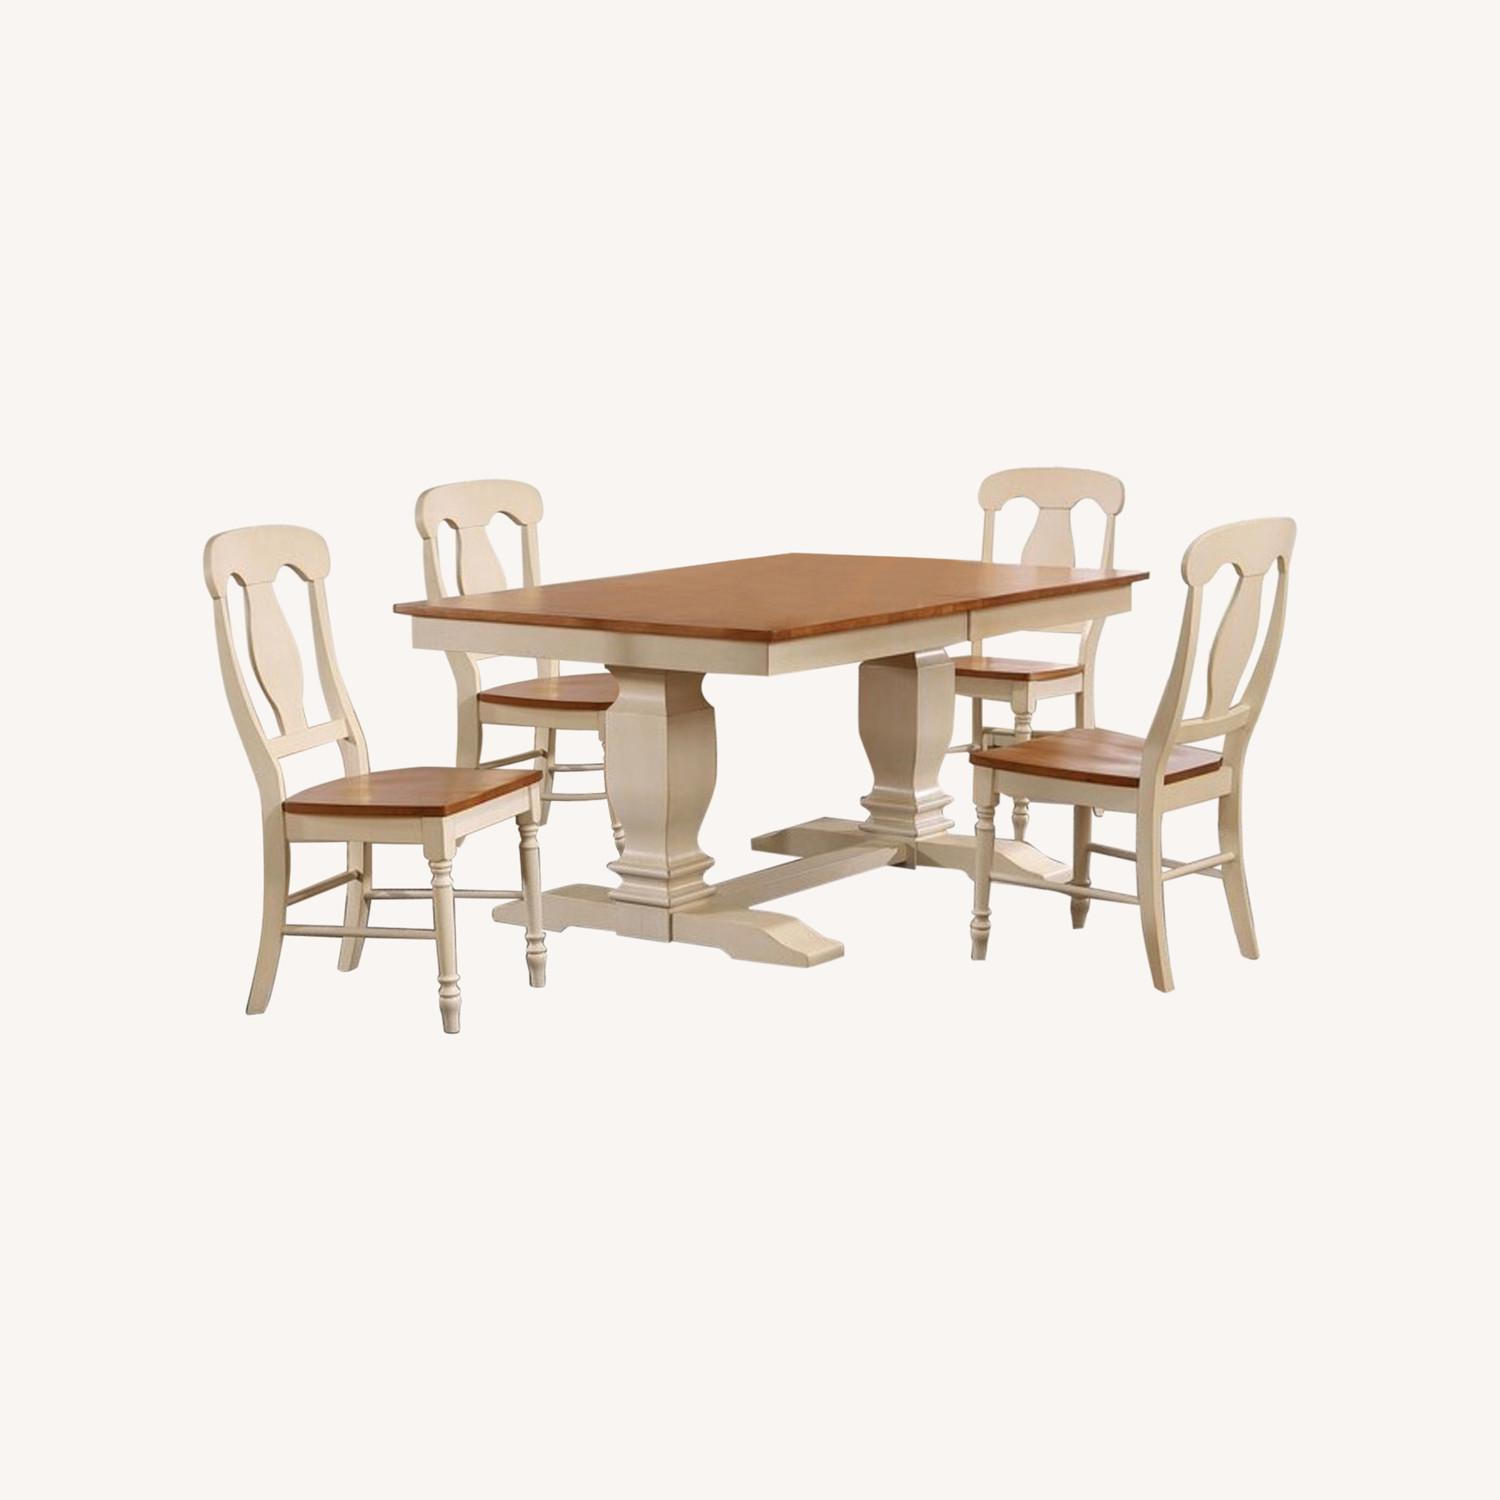 Dinettestyles Solid Wood Extension Dinnig Set - image-0